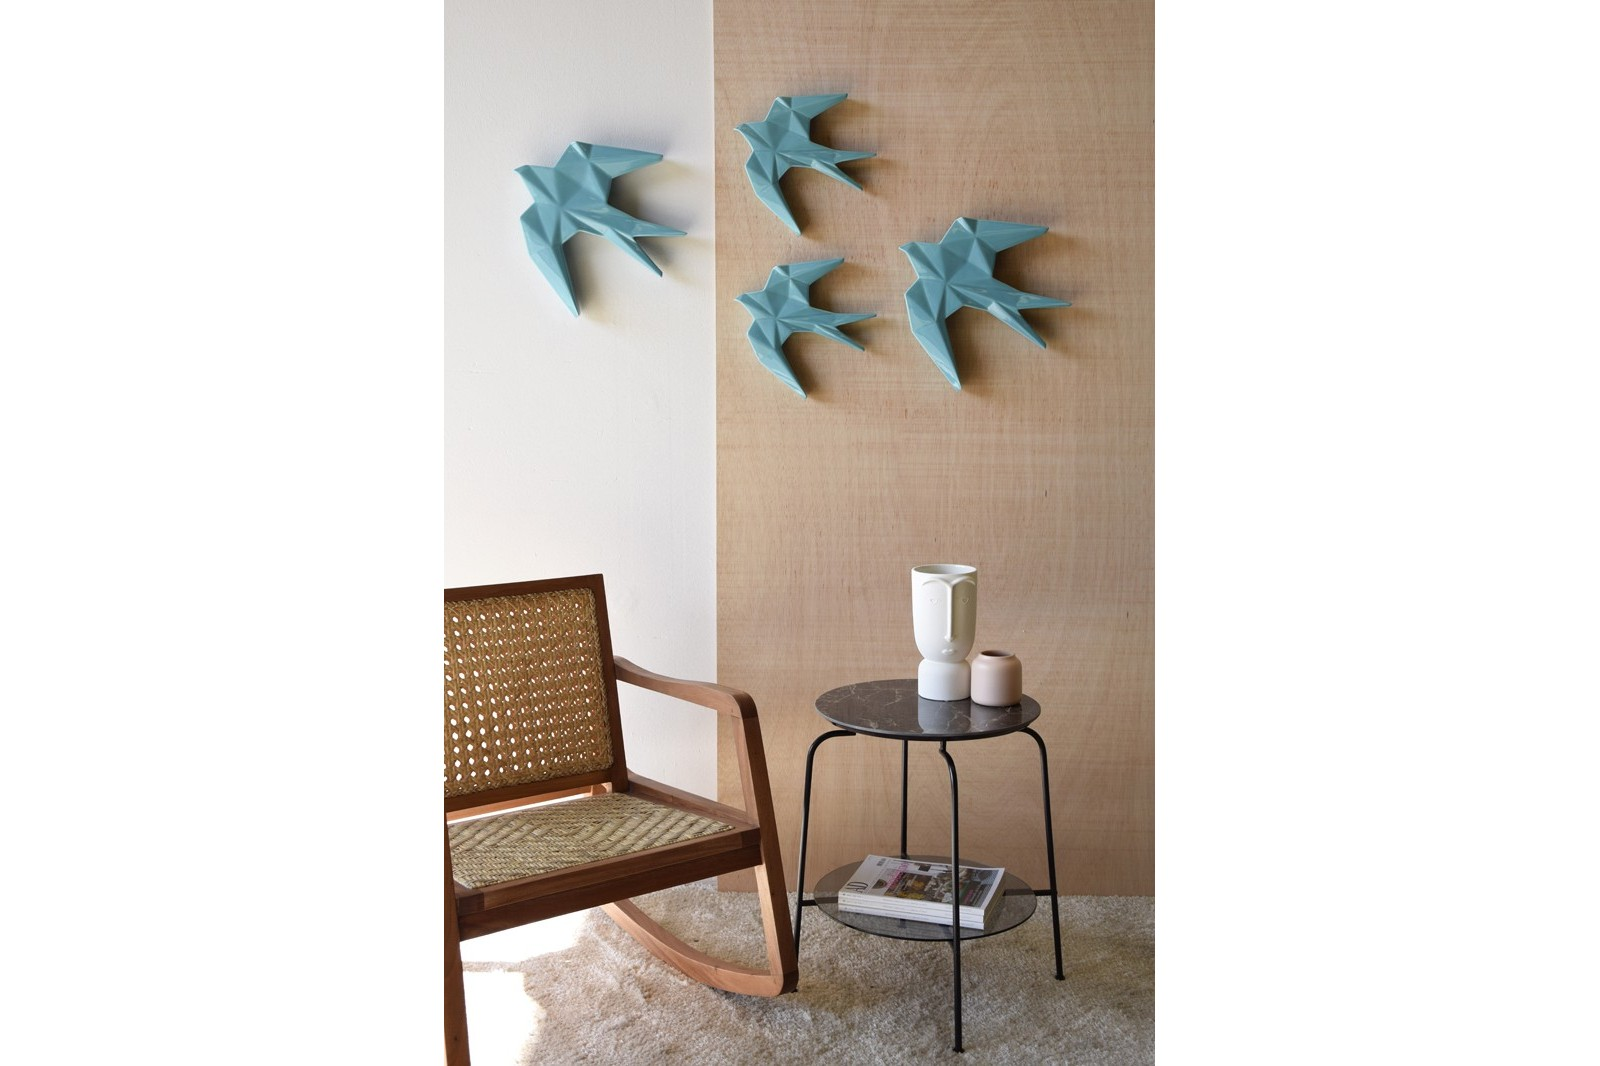 ANDURIÑA COLLECTION. GLOSSY BLUE CERAMIC WALL SCULPTURE